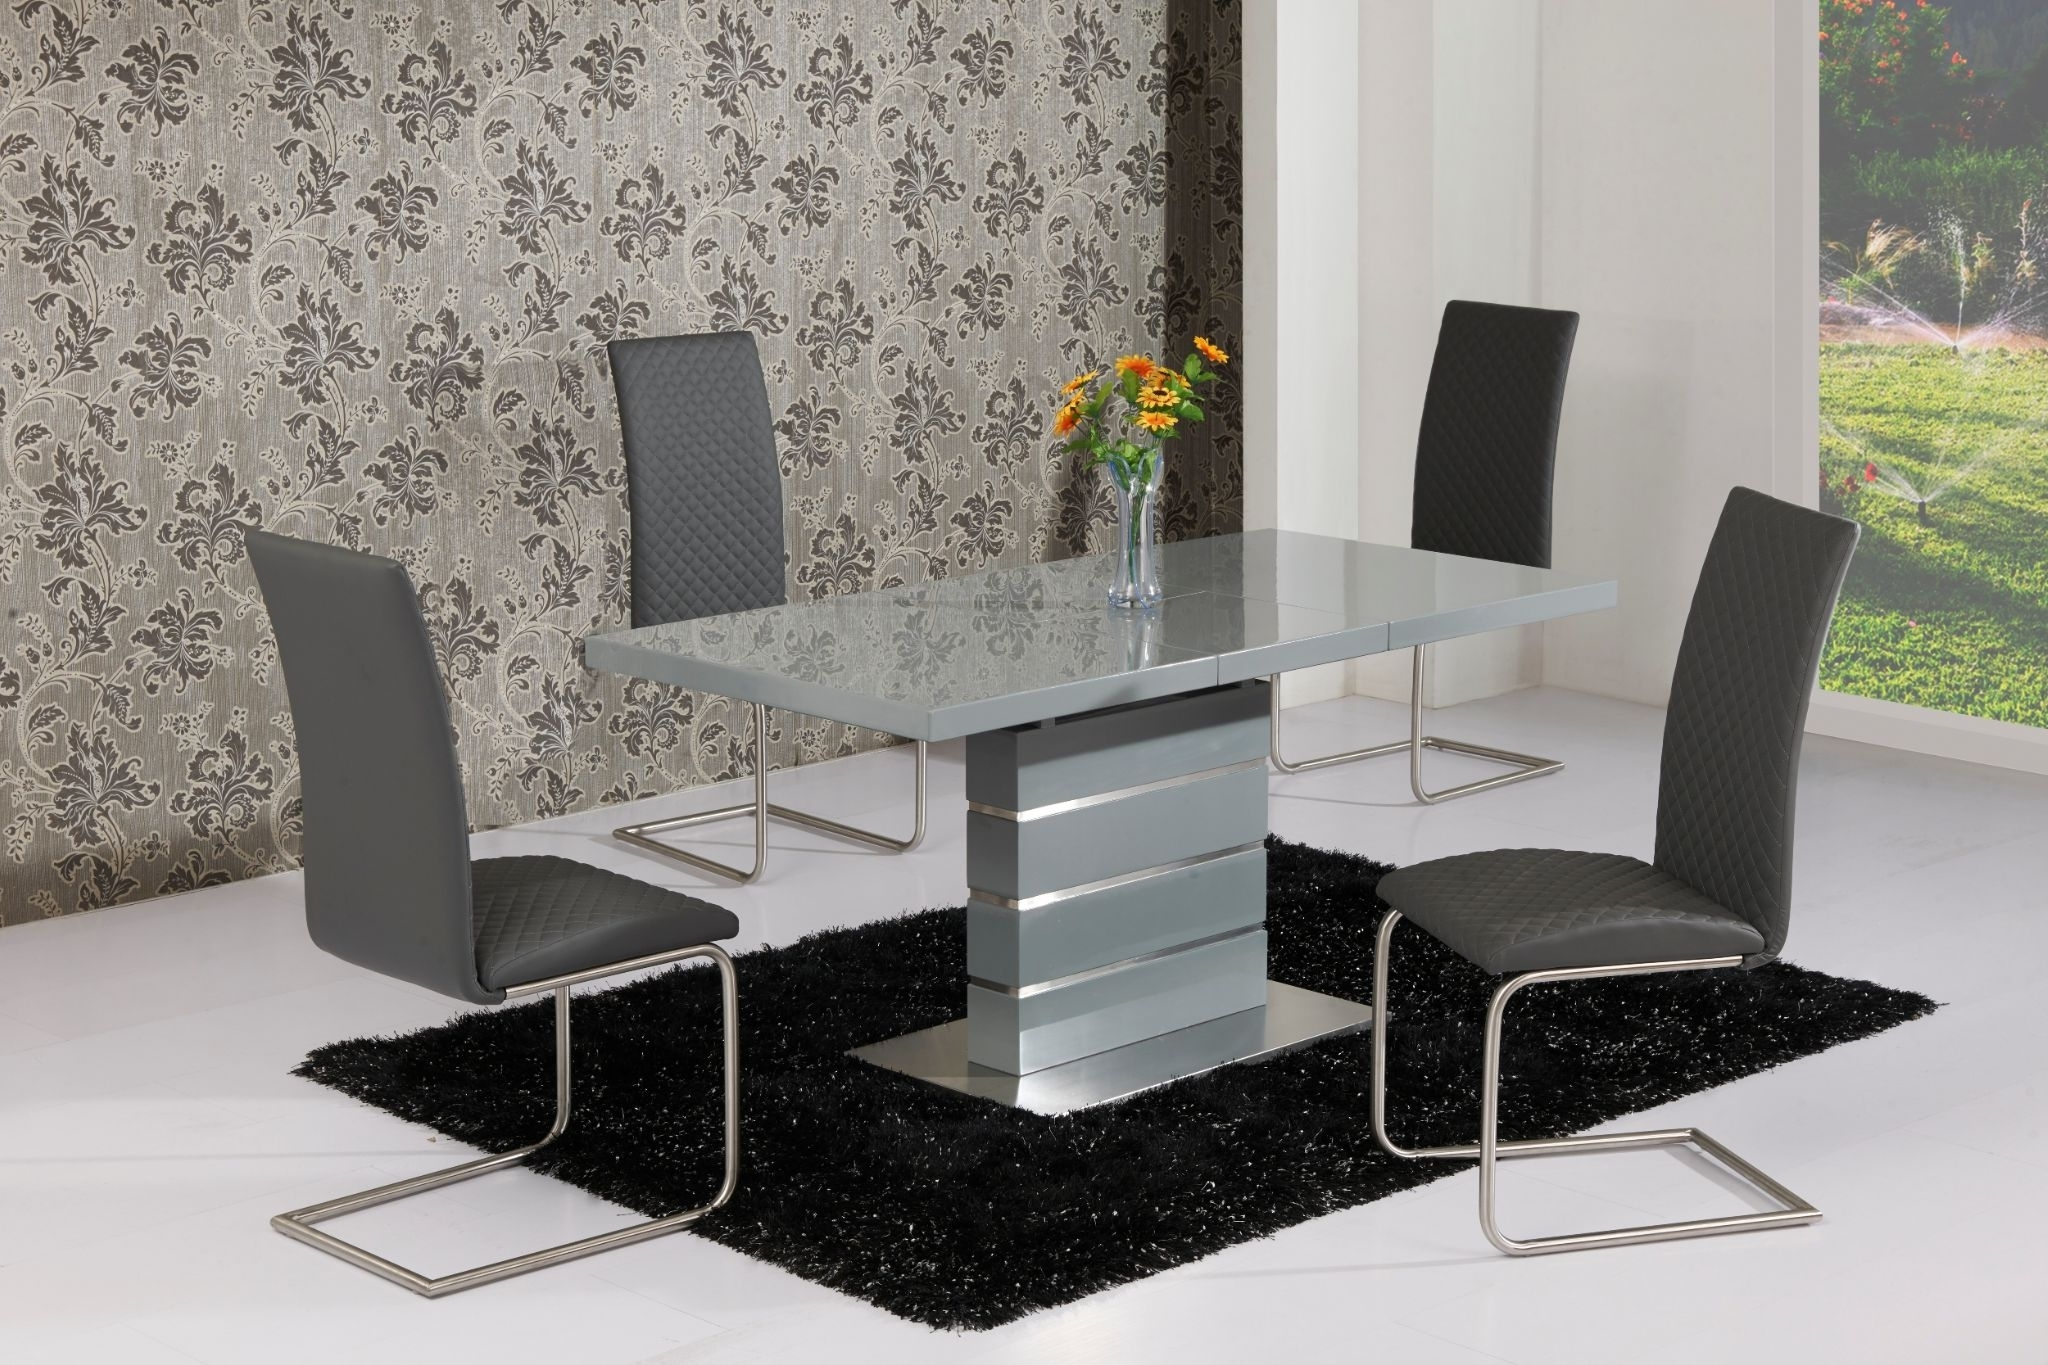 Buy Extendable Dining Table In Grey White Or Cream Pertaining To Popular Cream High Gloss Dining Tables (View 5 of 25)